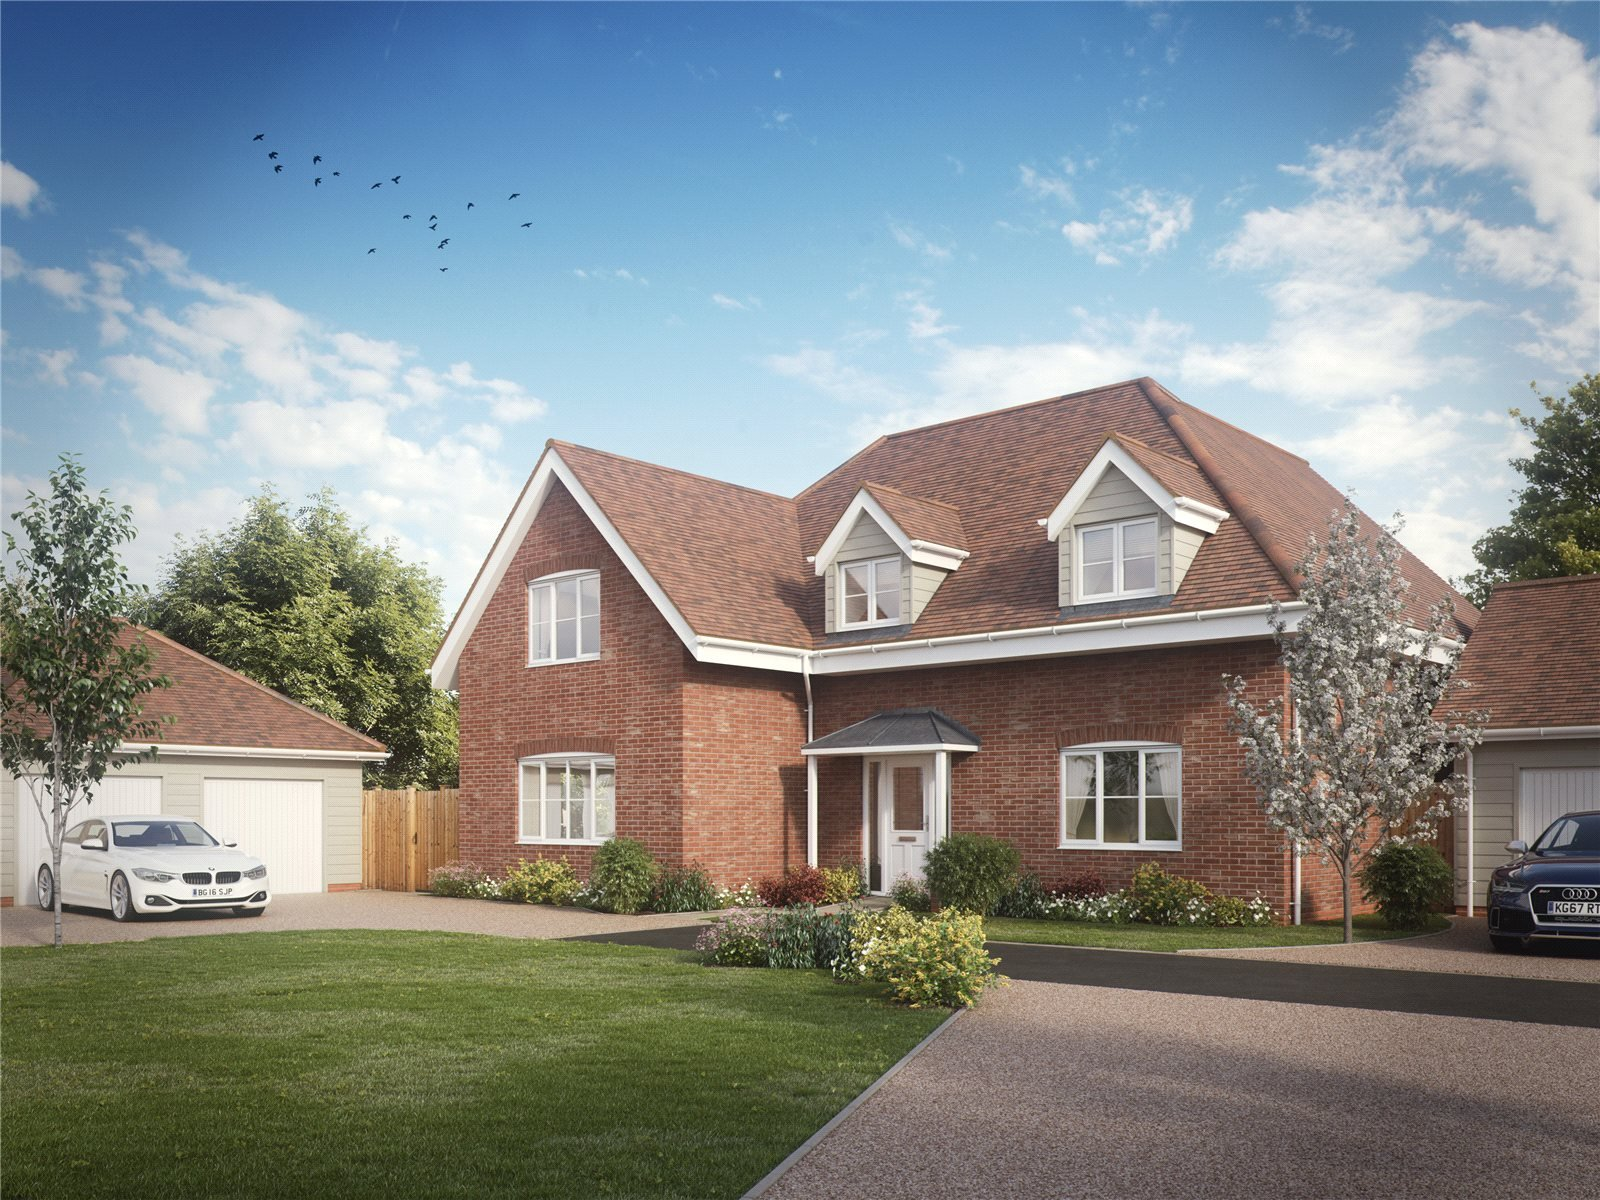 Plot 8 – 5 Bedroom Detached Homes - £785,000 – Available